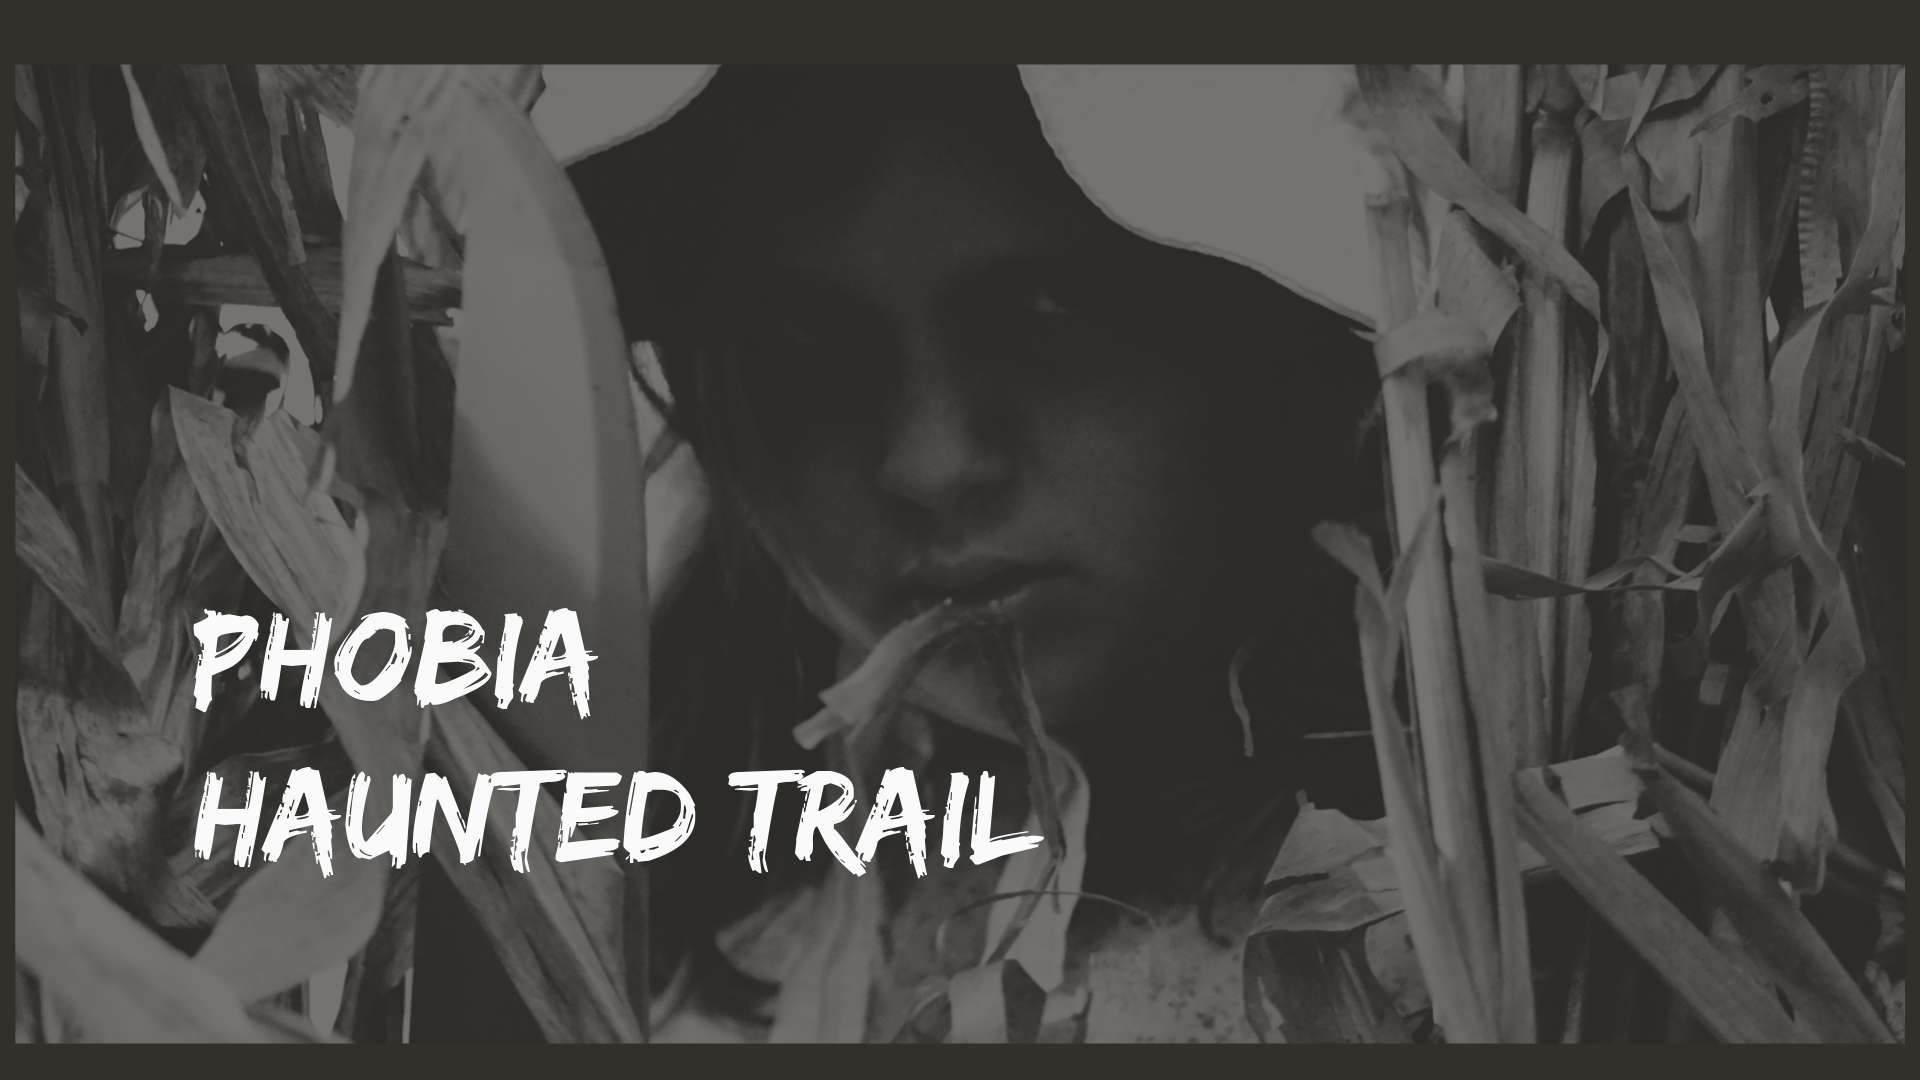 PHOBIA HAUNTED TRAIL (5).png